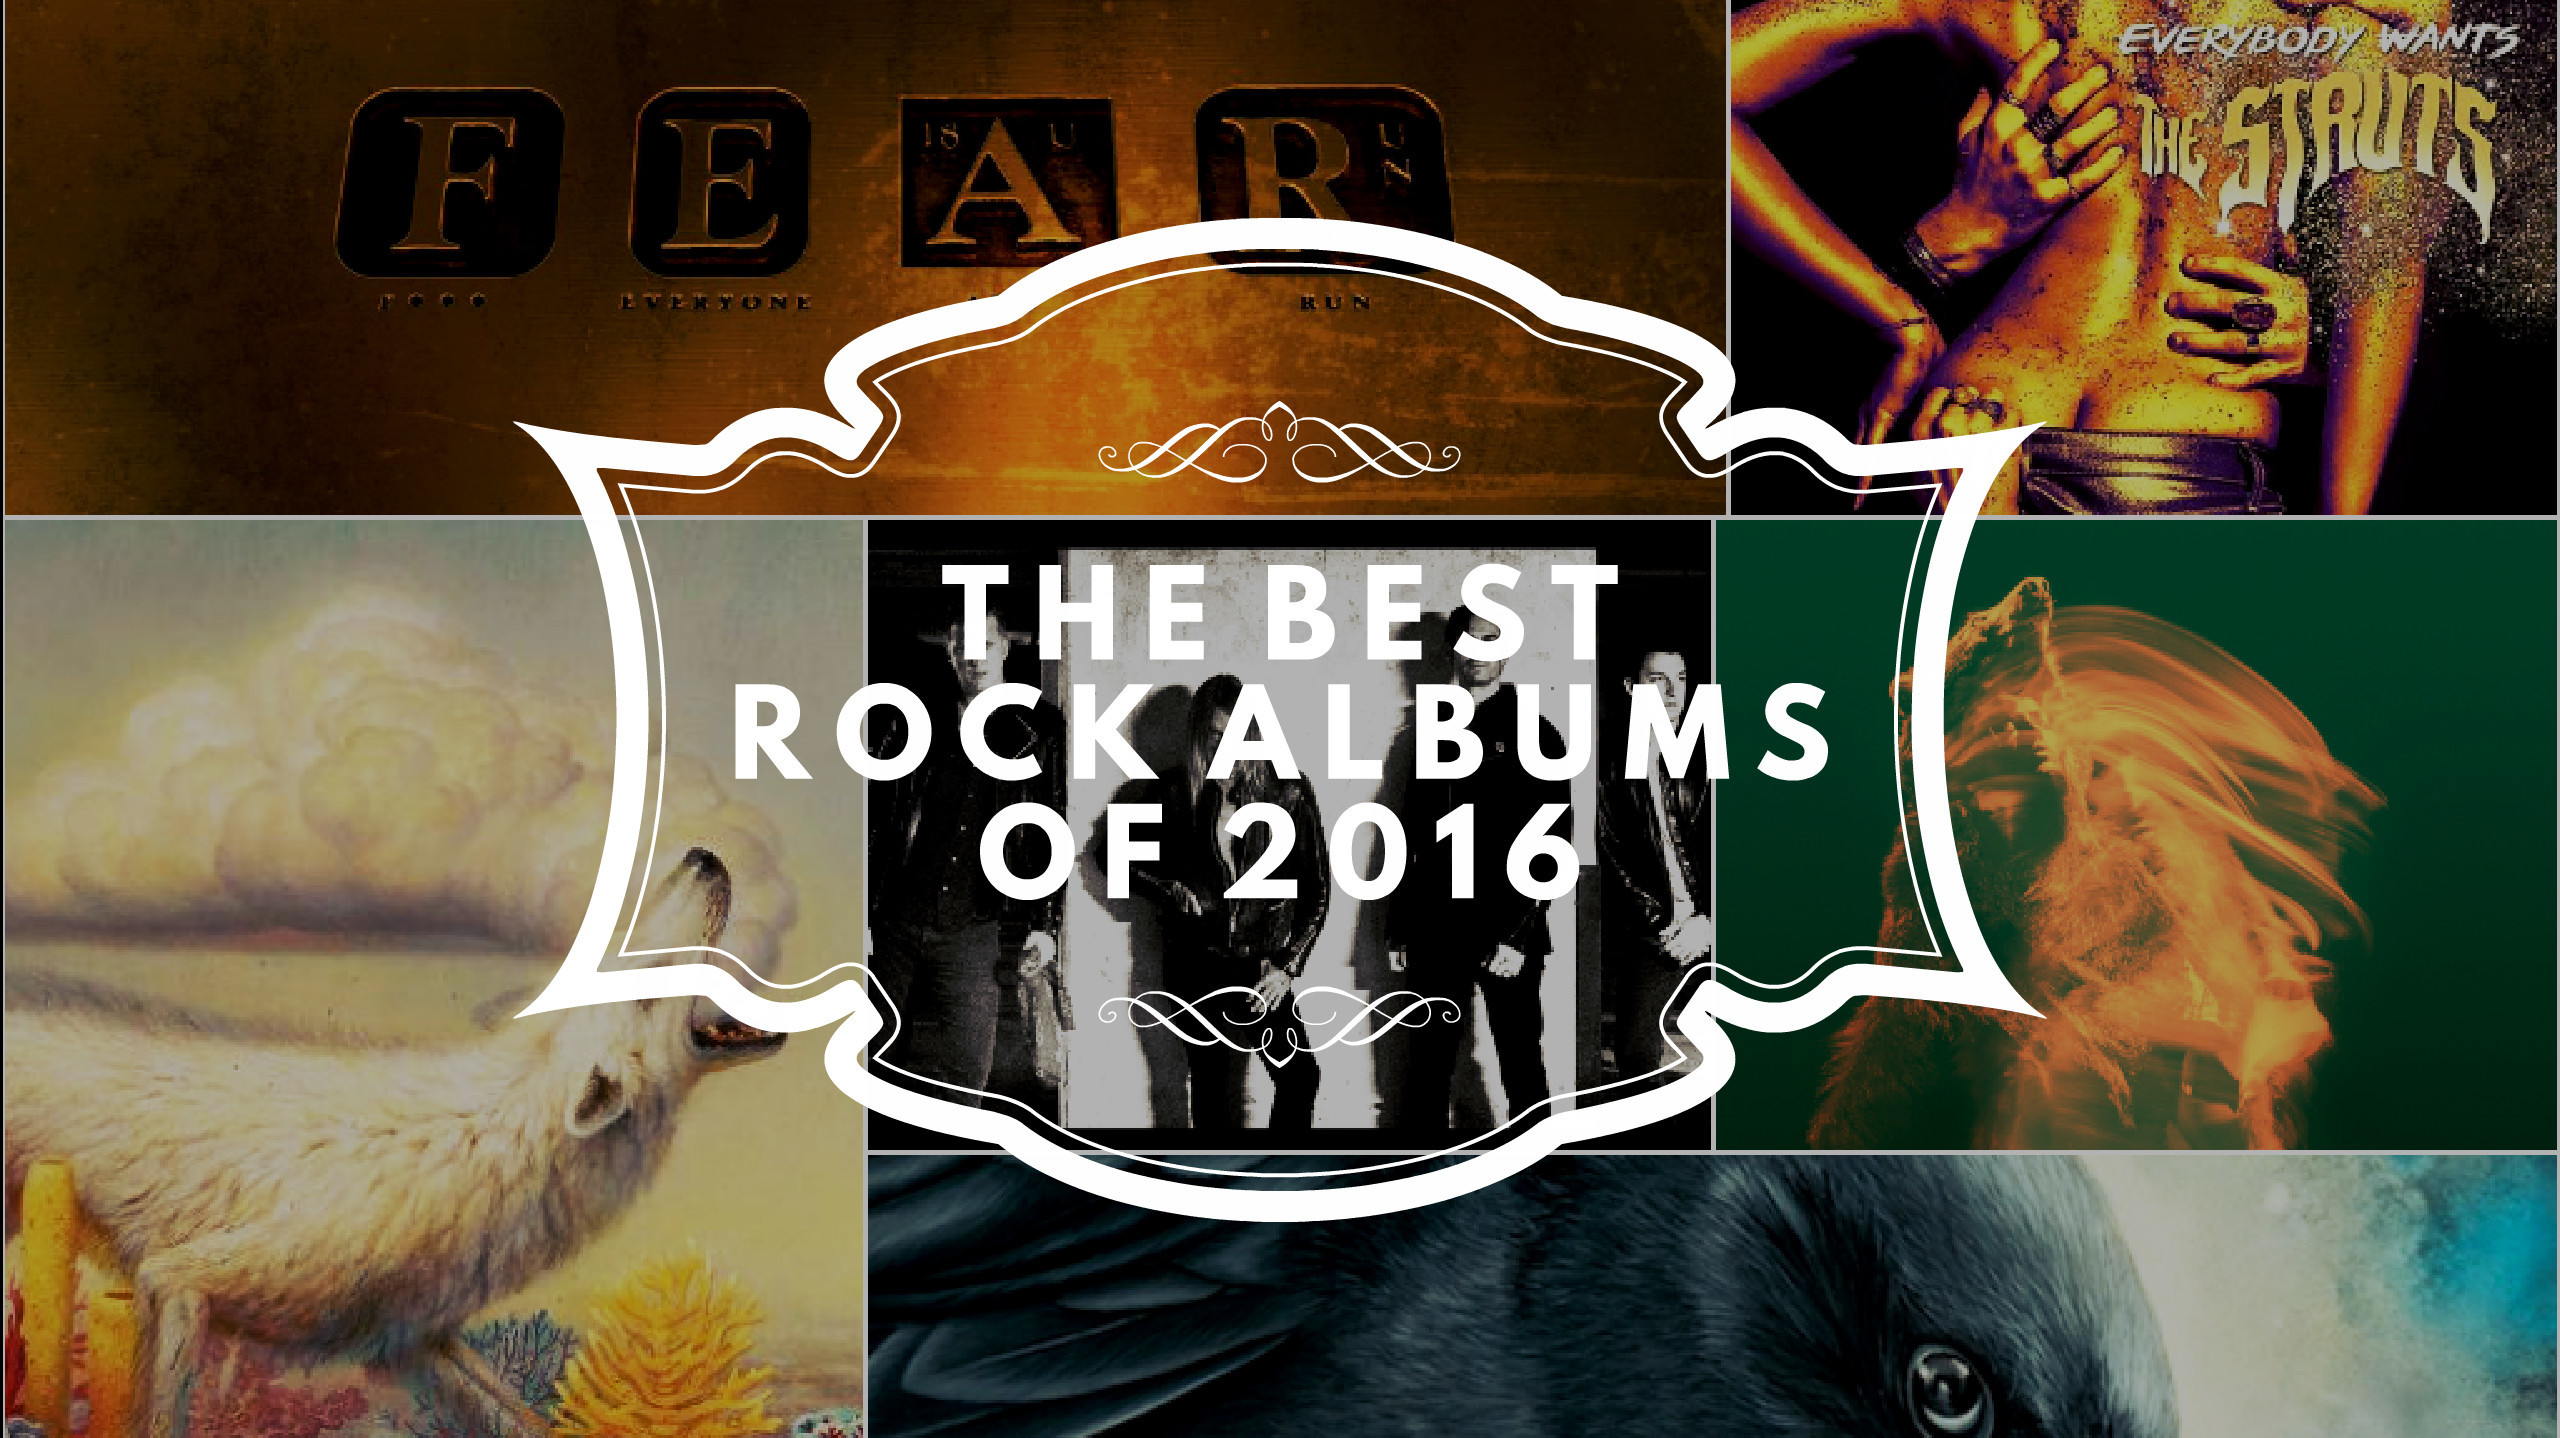 The 50 best rock albums of 2016   Louder Job For Form Four Leavers on applications for jobs, logos for jobs, apply for jobs, contracts for jobs, supplies for jobs, graphics for jobs, flyers for jobs, statistics for jobs, examples for jobs, charts for jobs, templates for jobs, training for jobs, drawings for jobs, education for jobs, fields for jobs, contacts for jobs, search for jobs, facilities for jobs, handbook for jobs, tables for jobs,